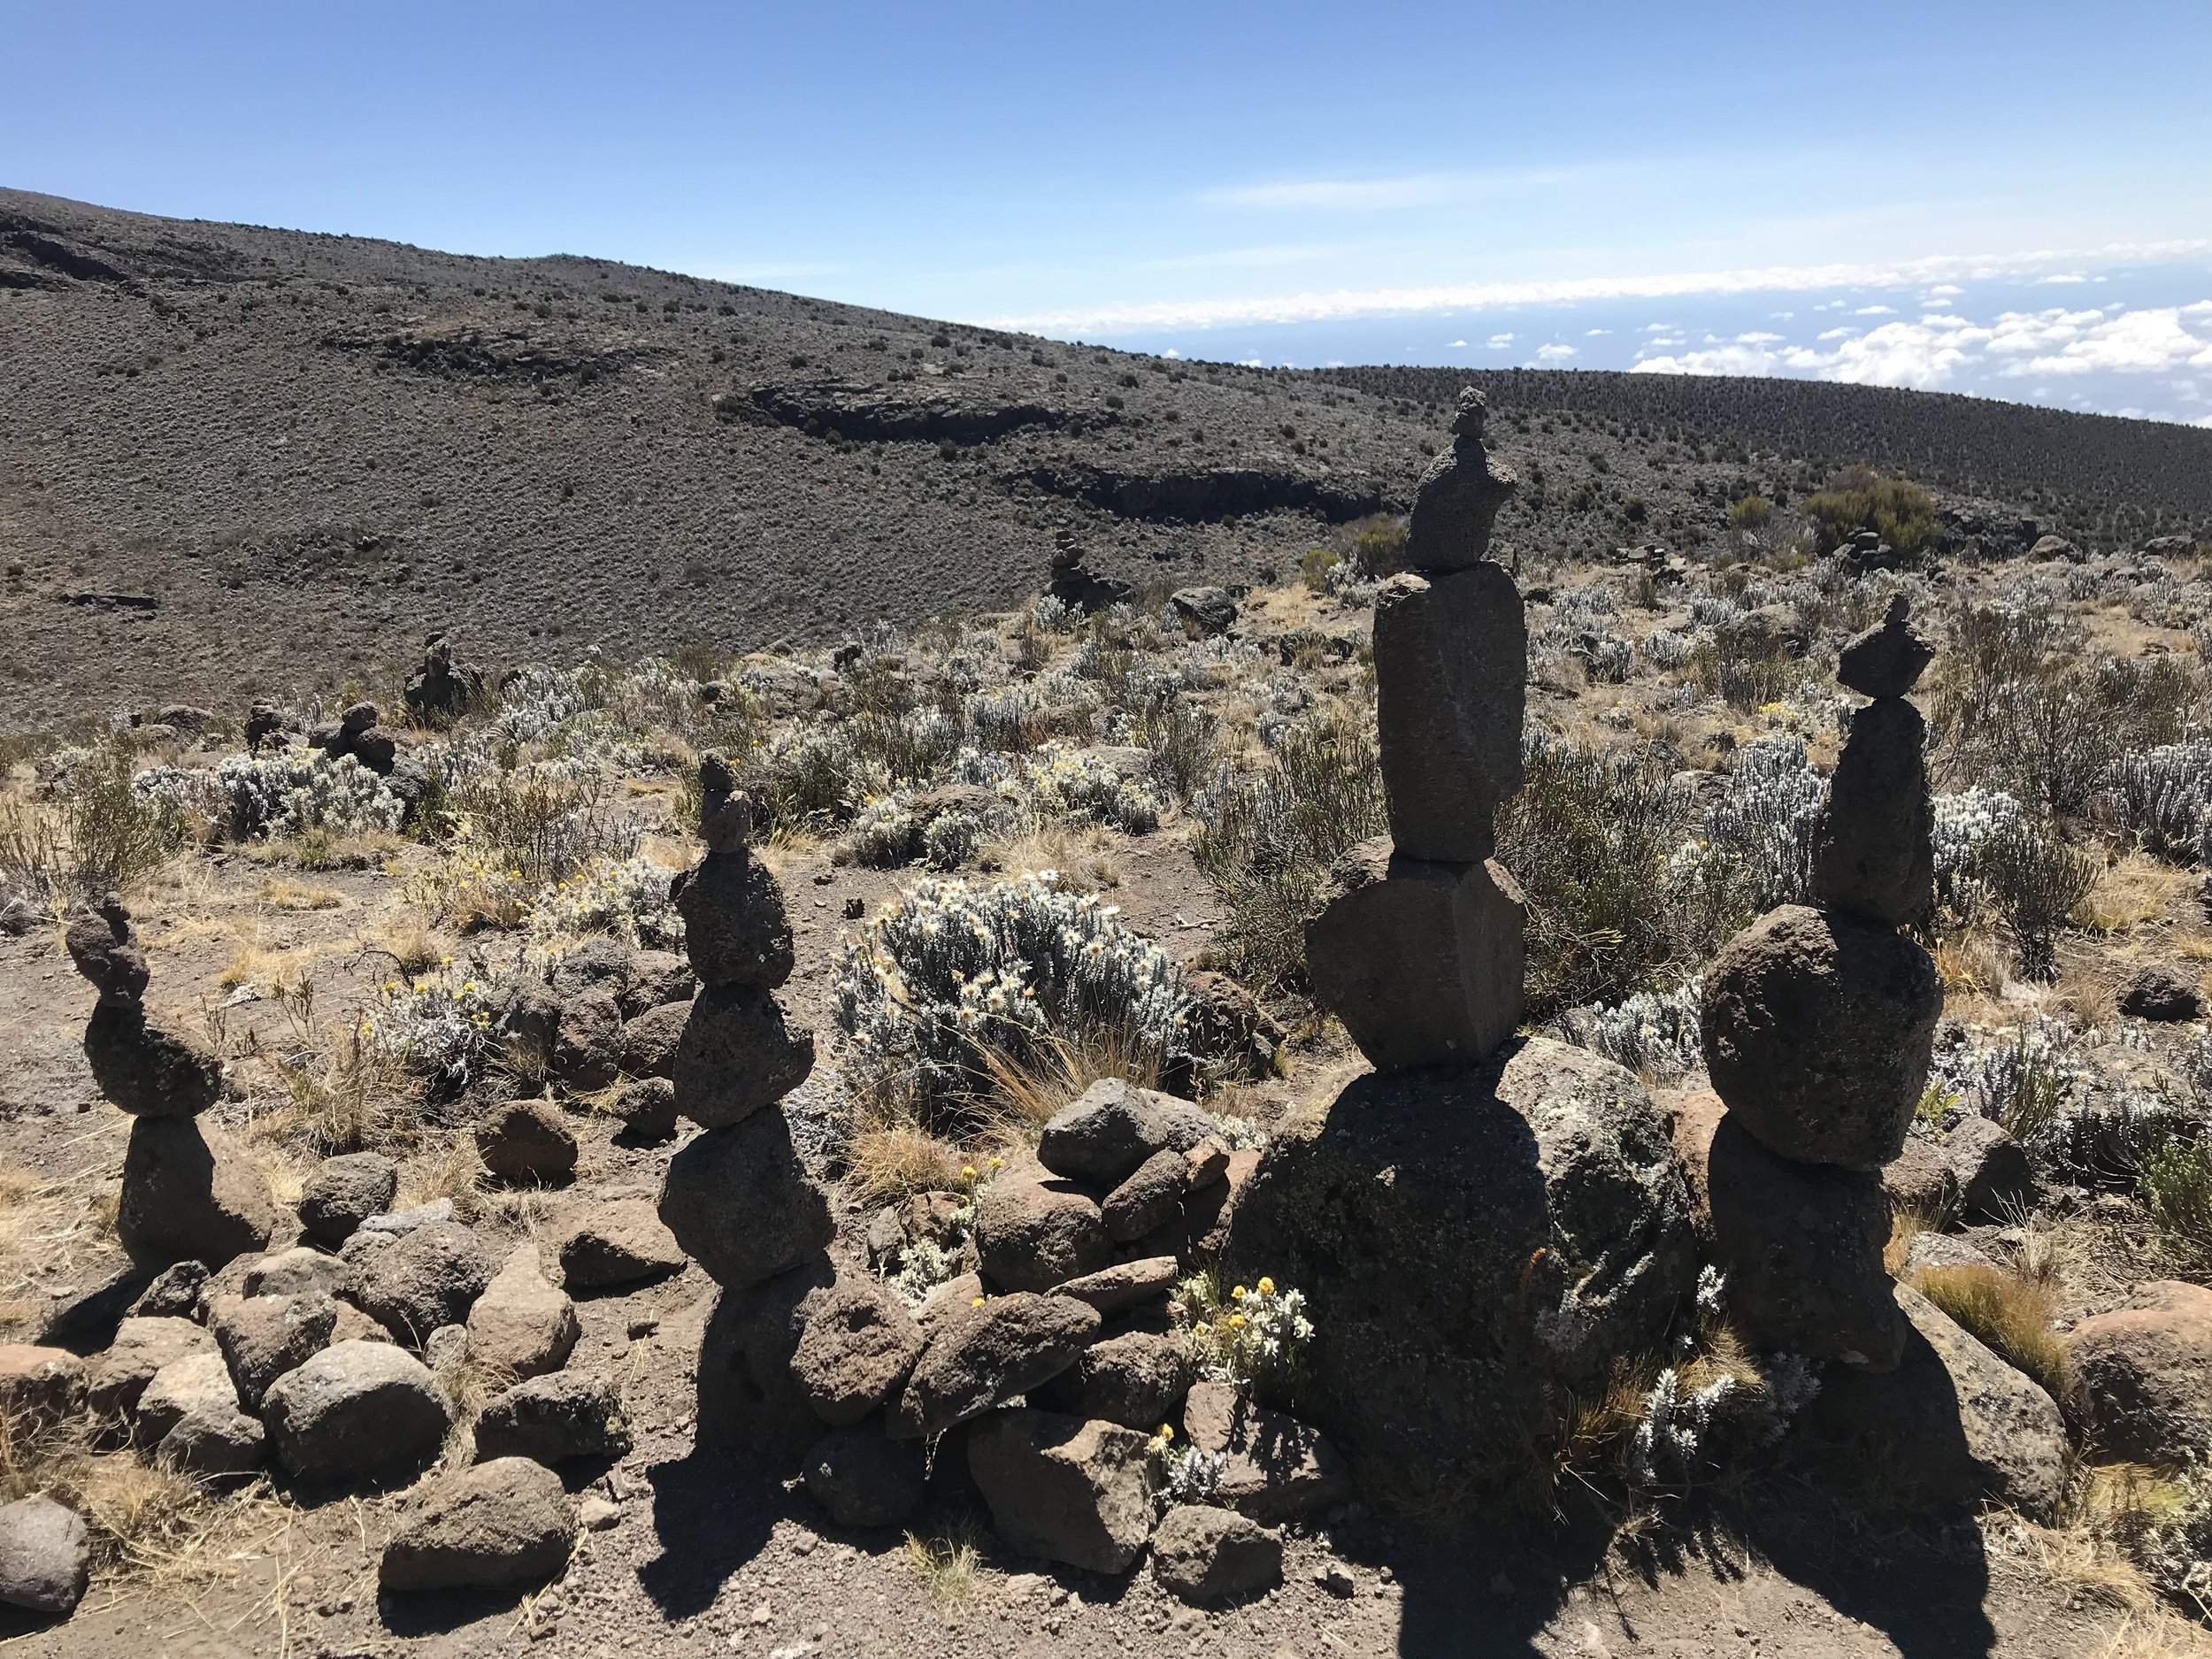 Cairns at Zebra Rocks, one of our destinations on the acclimation hike from Horombo.